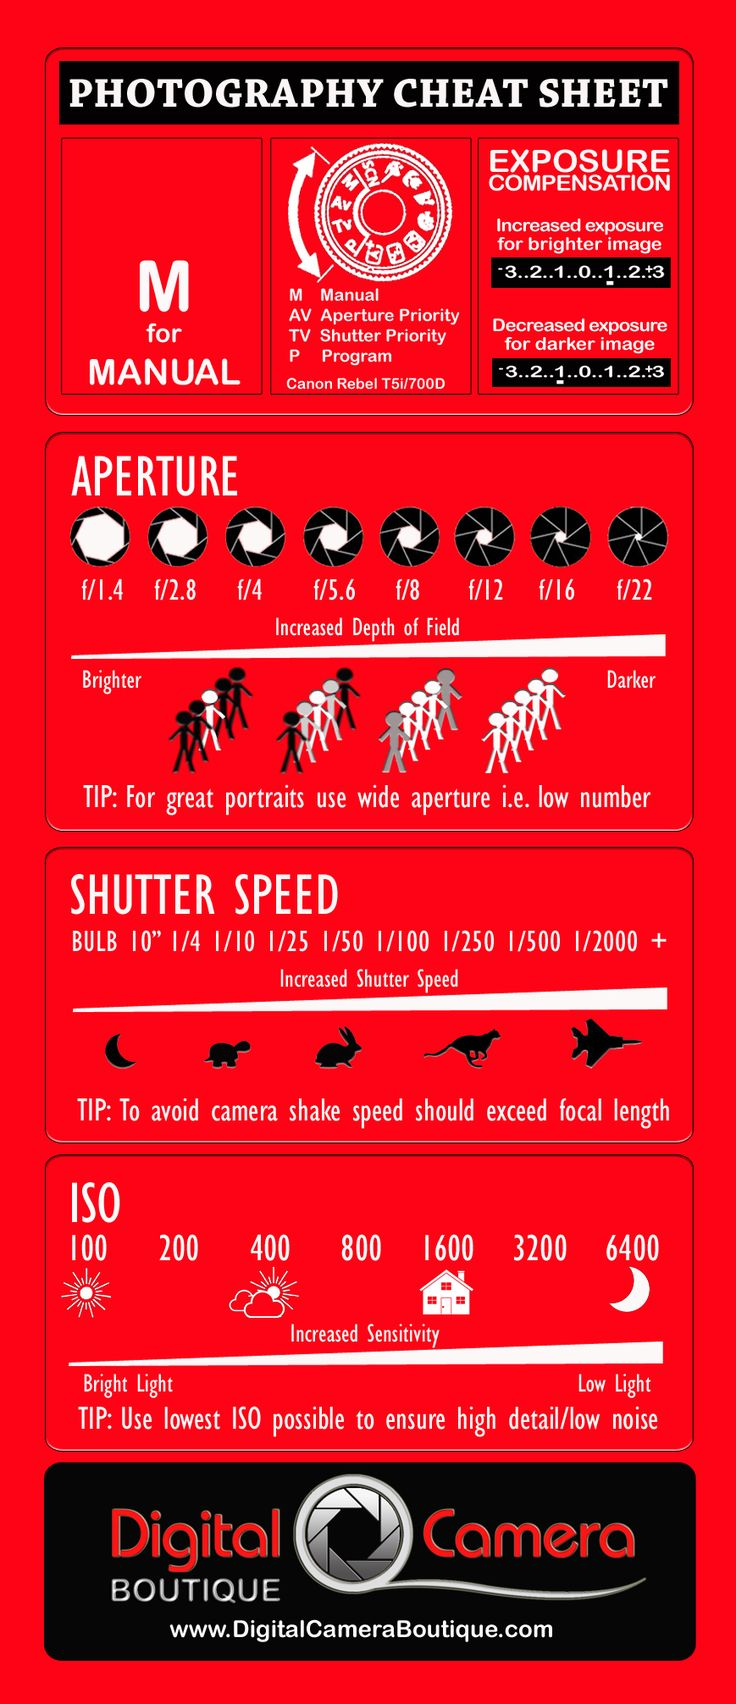 How to use a DSLR camera in Manual Mode - Photography Cheat Sheet | Digital Camera Boutique